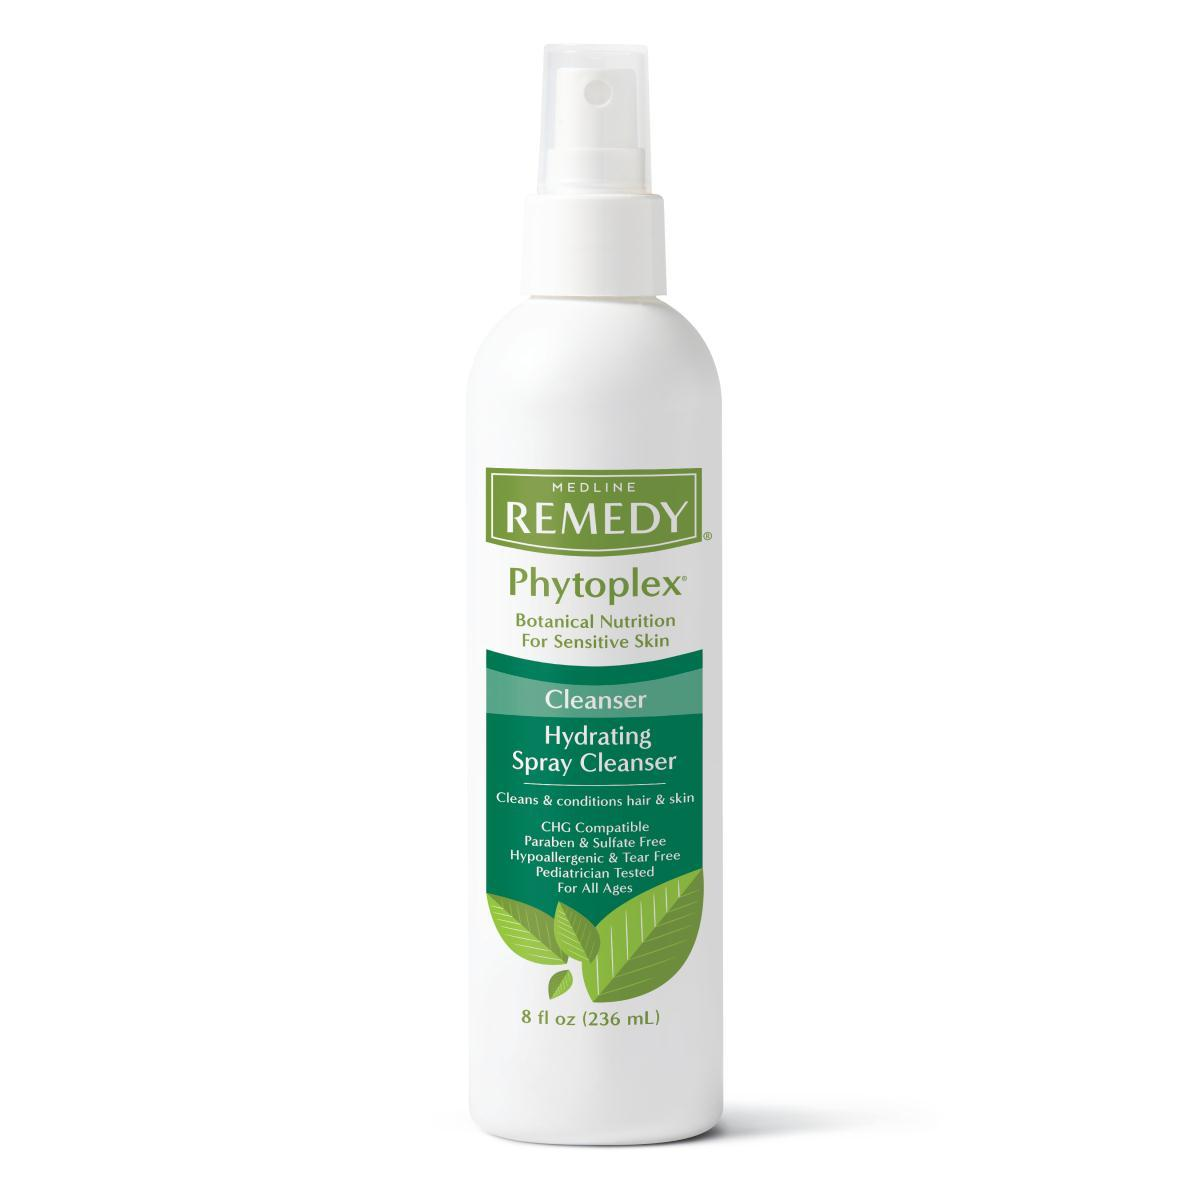 Nursing Supplies & Patient Care Skin Care Cleansers Foams & Lotions - Msc092208 - Cleanser Spray No Rinse Remedy Phyto 8oz MSC092208